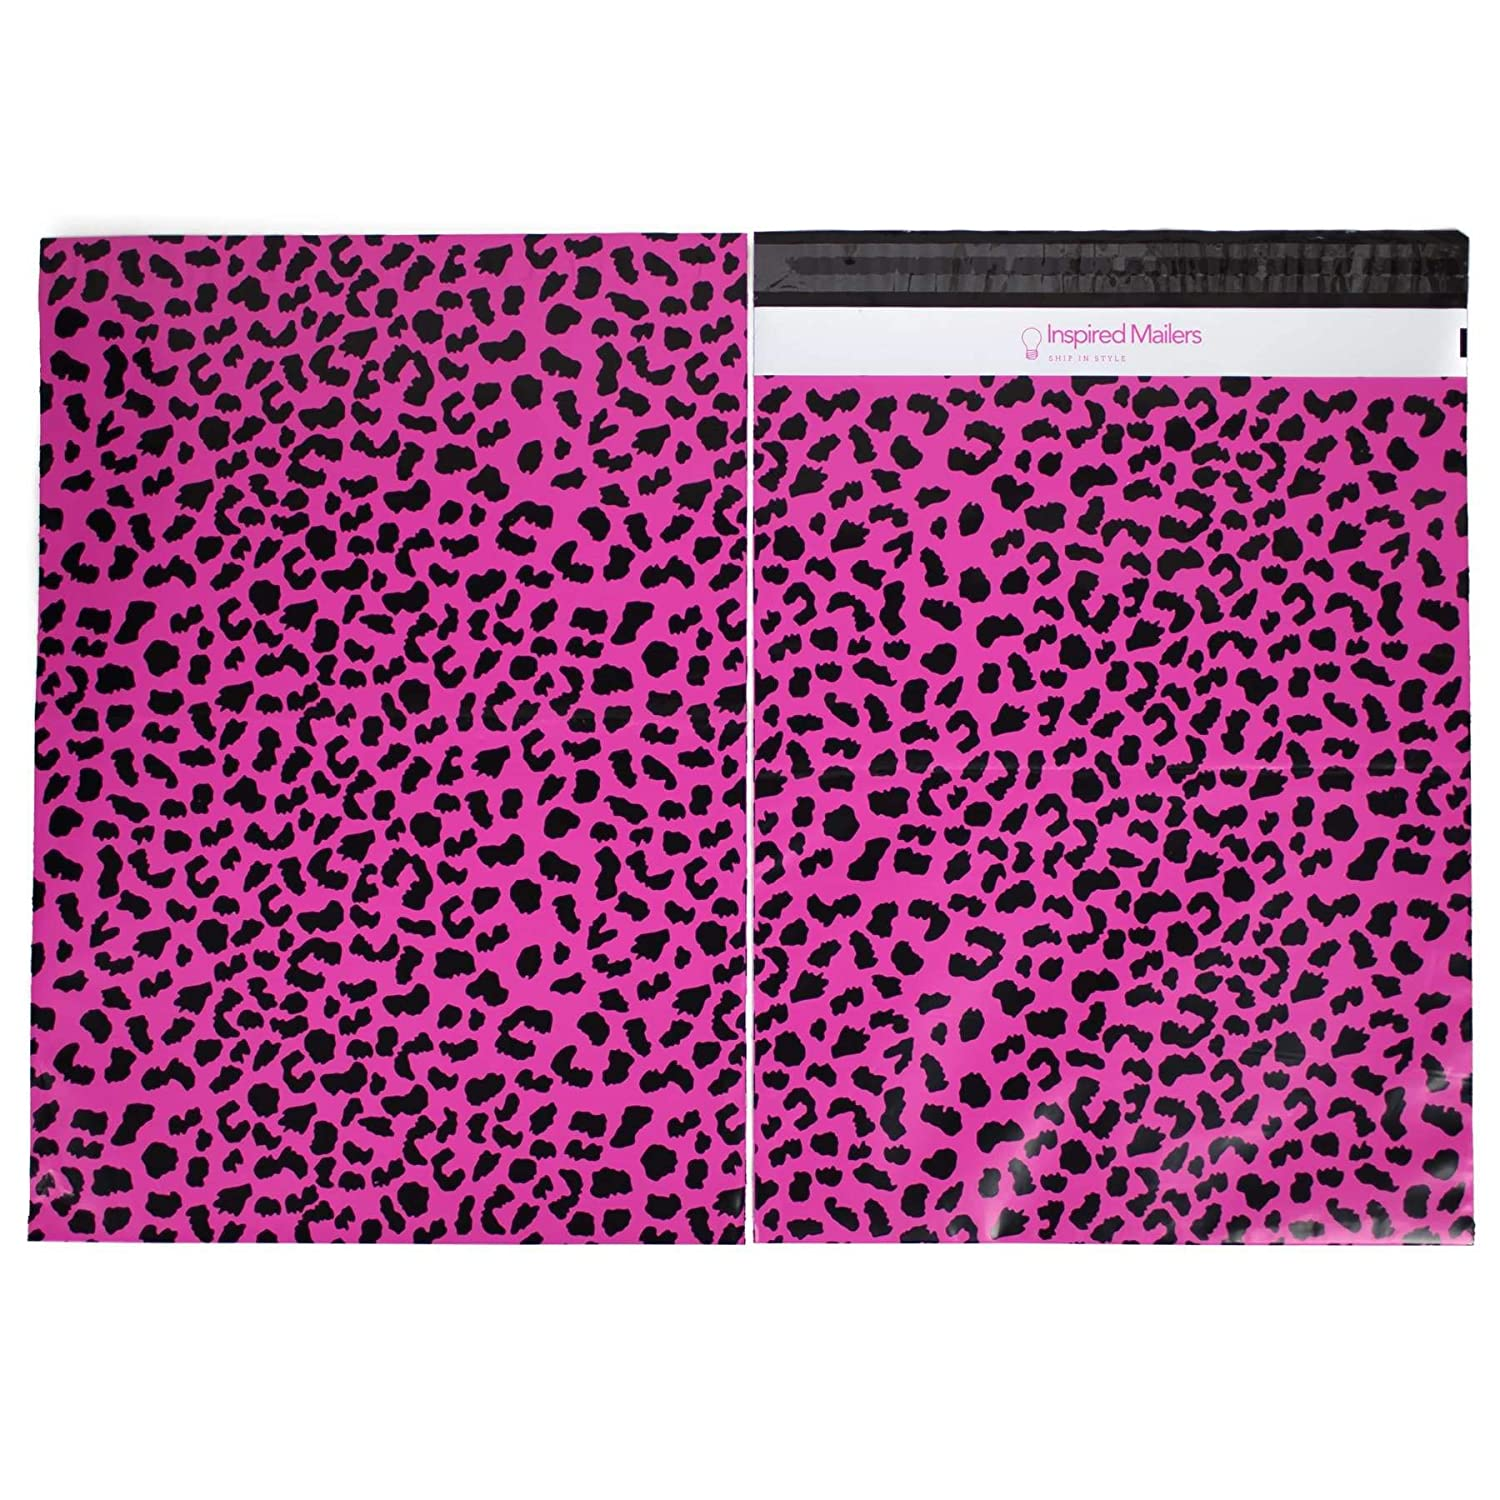 Inspired Mailers - Poly Mailers 10x13 - Hot Pink Cheetah - Choose Between  6x9, 10x13 and 14 5x19 Sizes - 3 15mil Unpadded Shipping Bags (10x13, 100